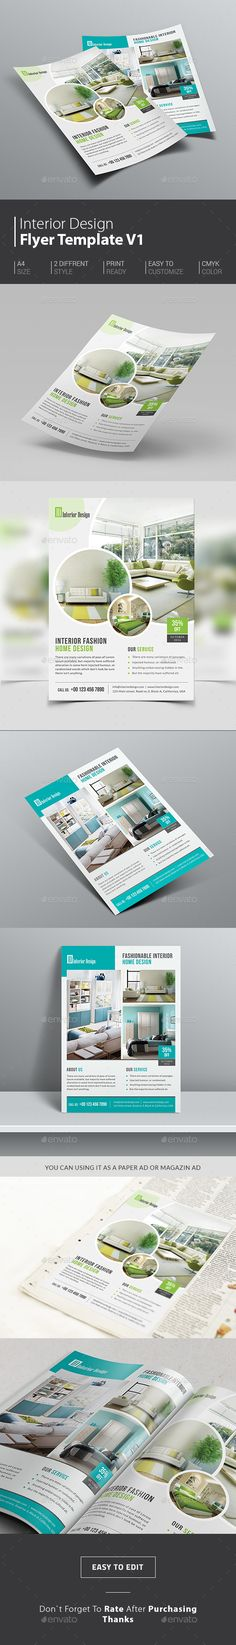 Interior Design Flyer Template Best Trending For Bagging More Clients